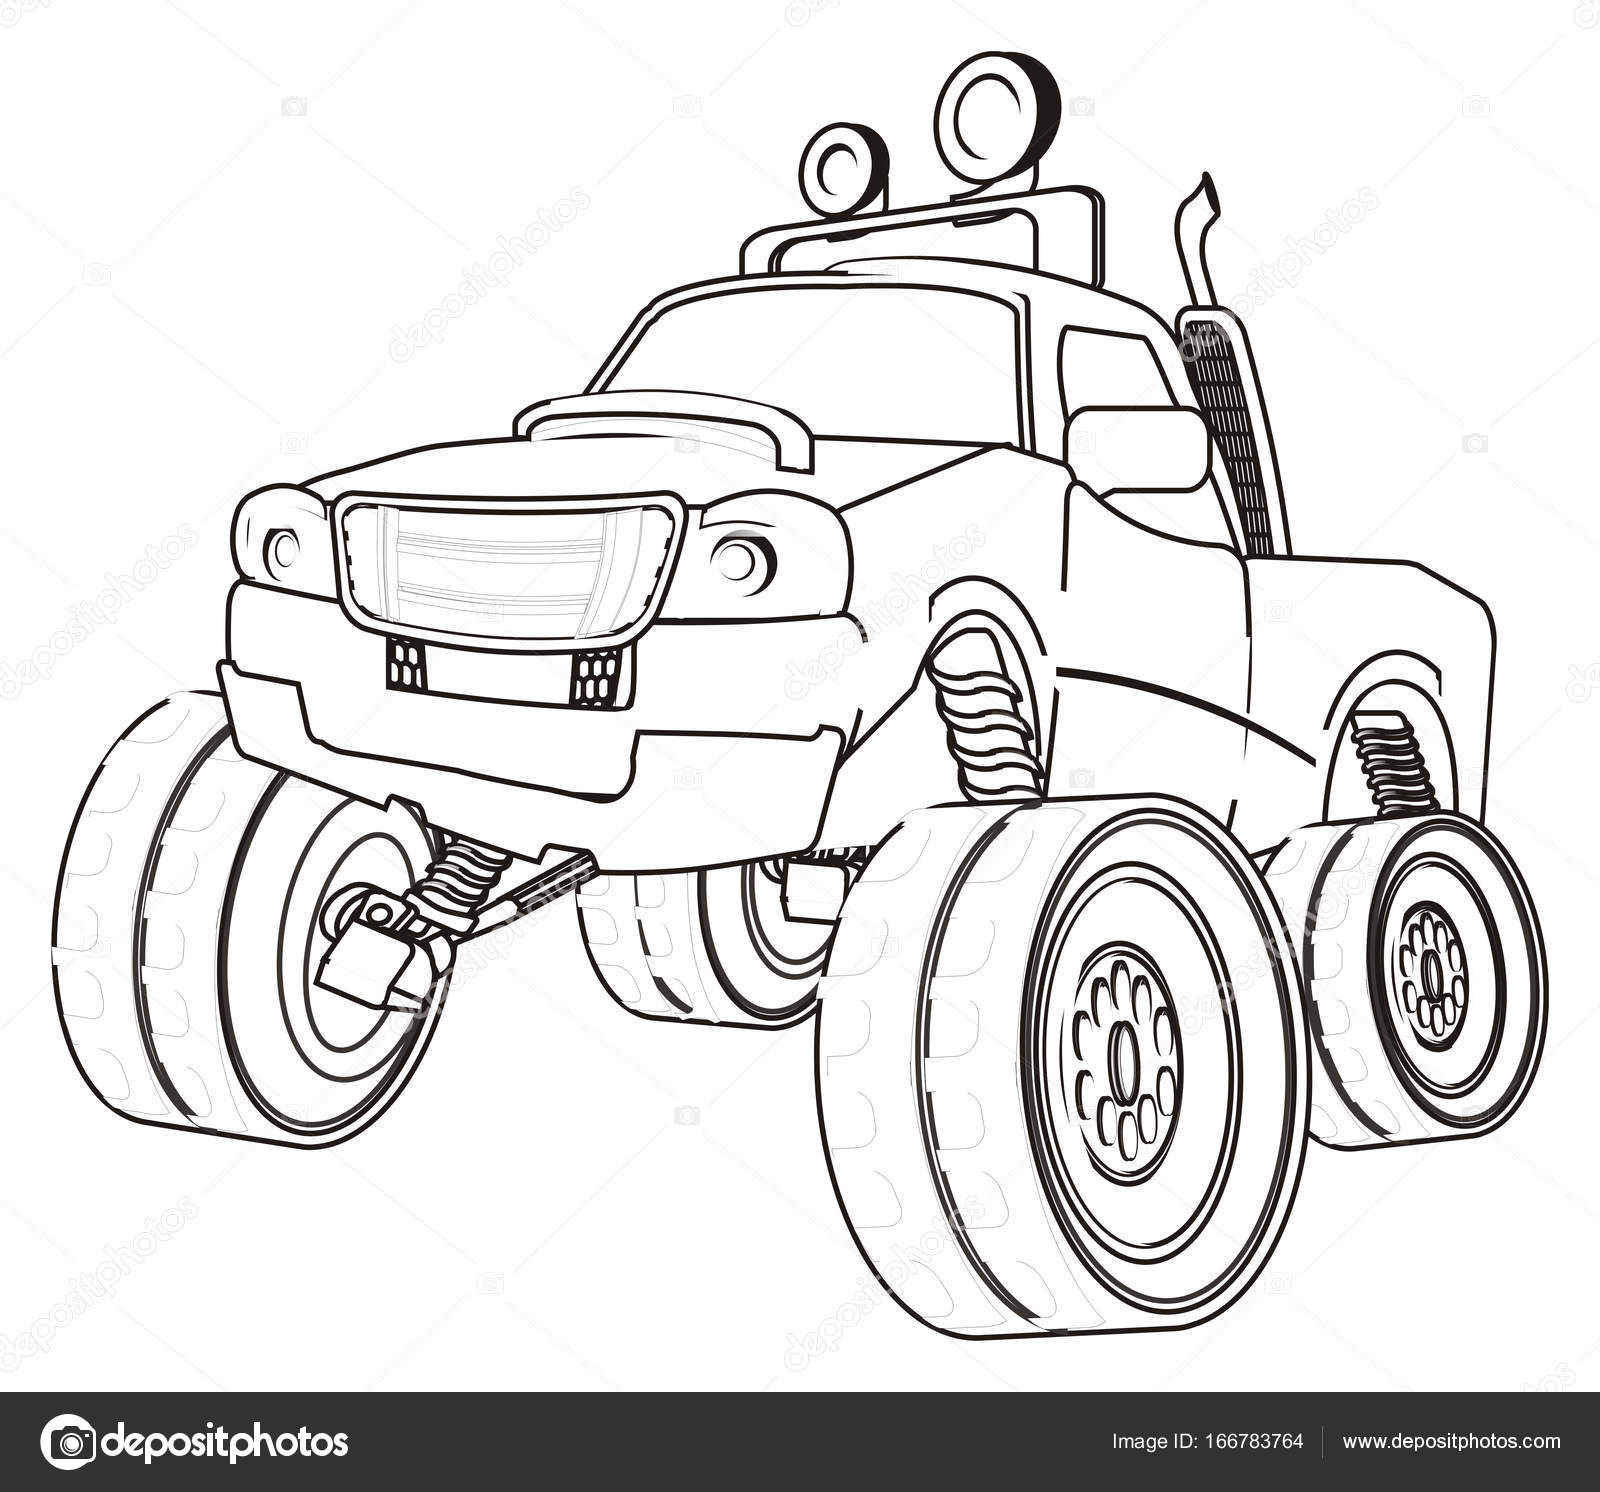 Disegni da colorare auto bigfoot foto stock - Pagina da colorare di monster truck ...